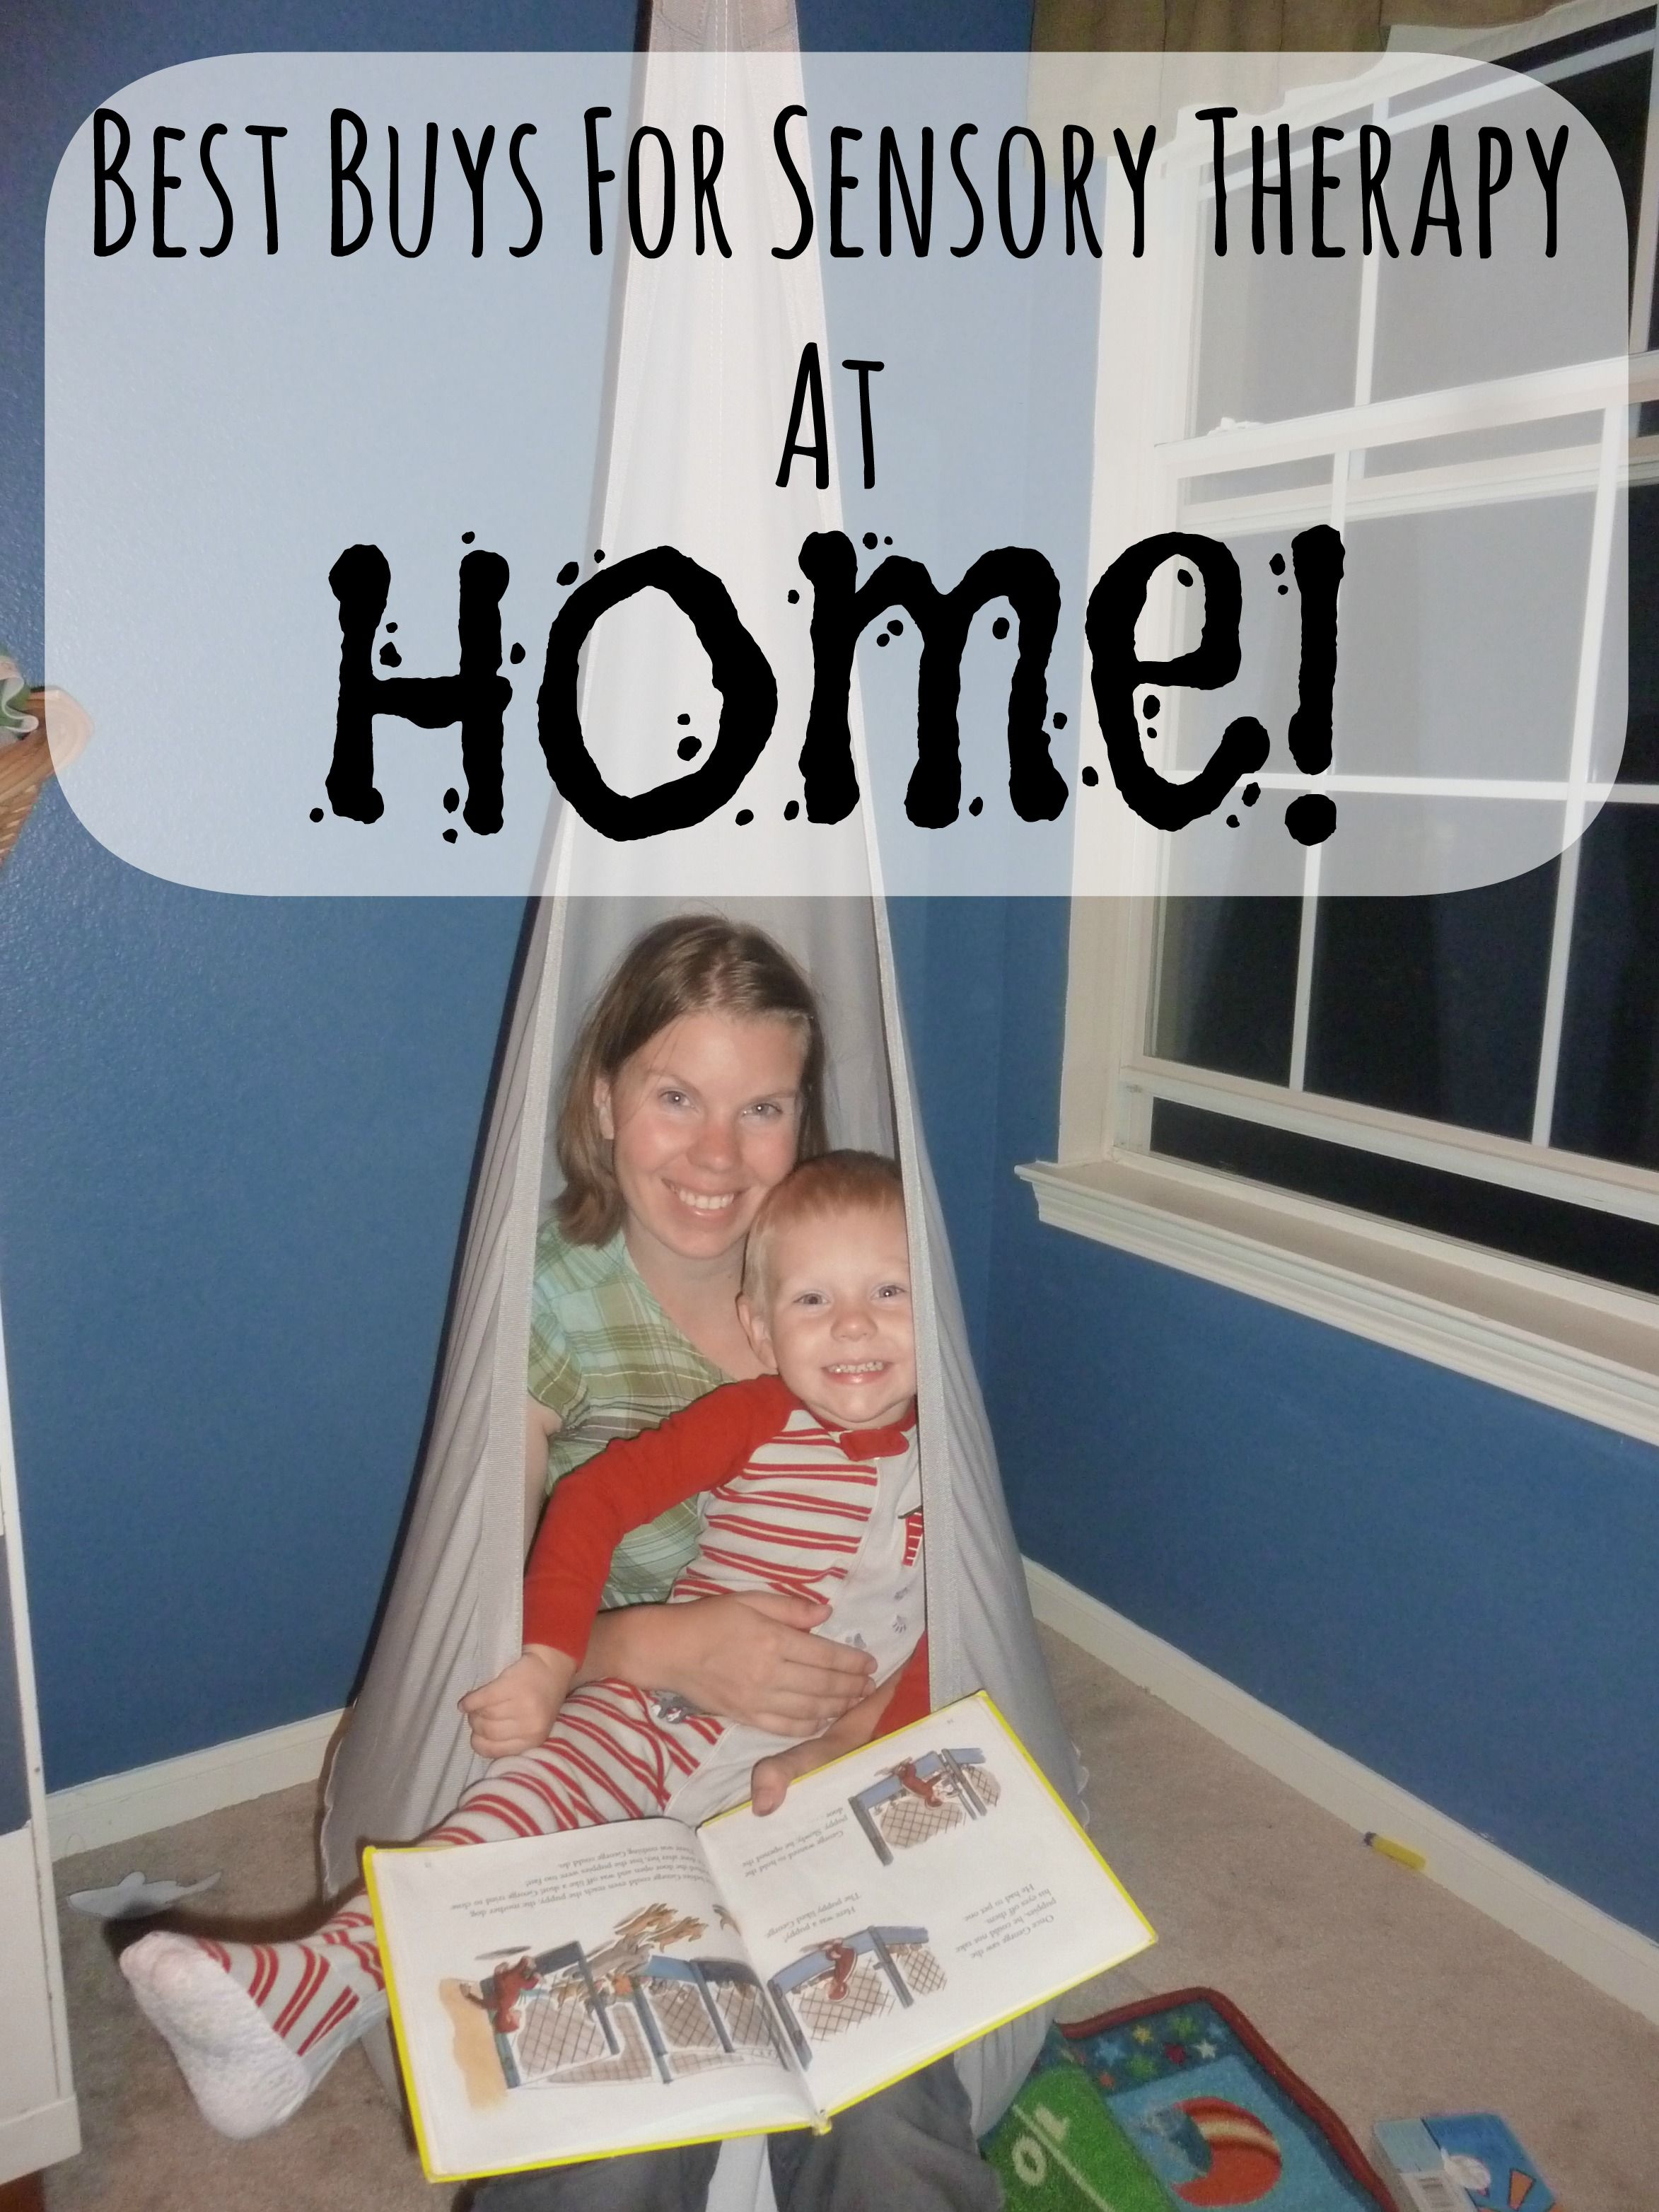 Sensory Integration Room Design: Best Buys For Sensory Processing Therapy At Home